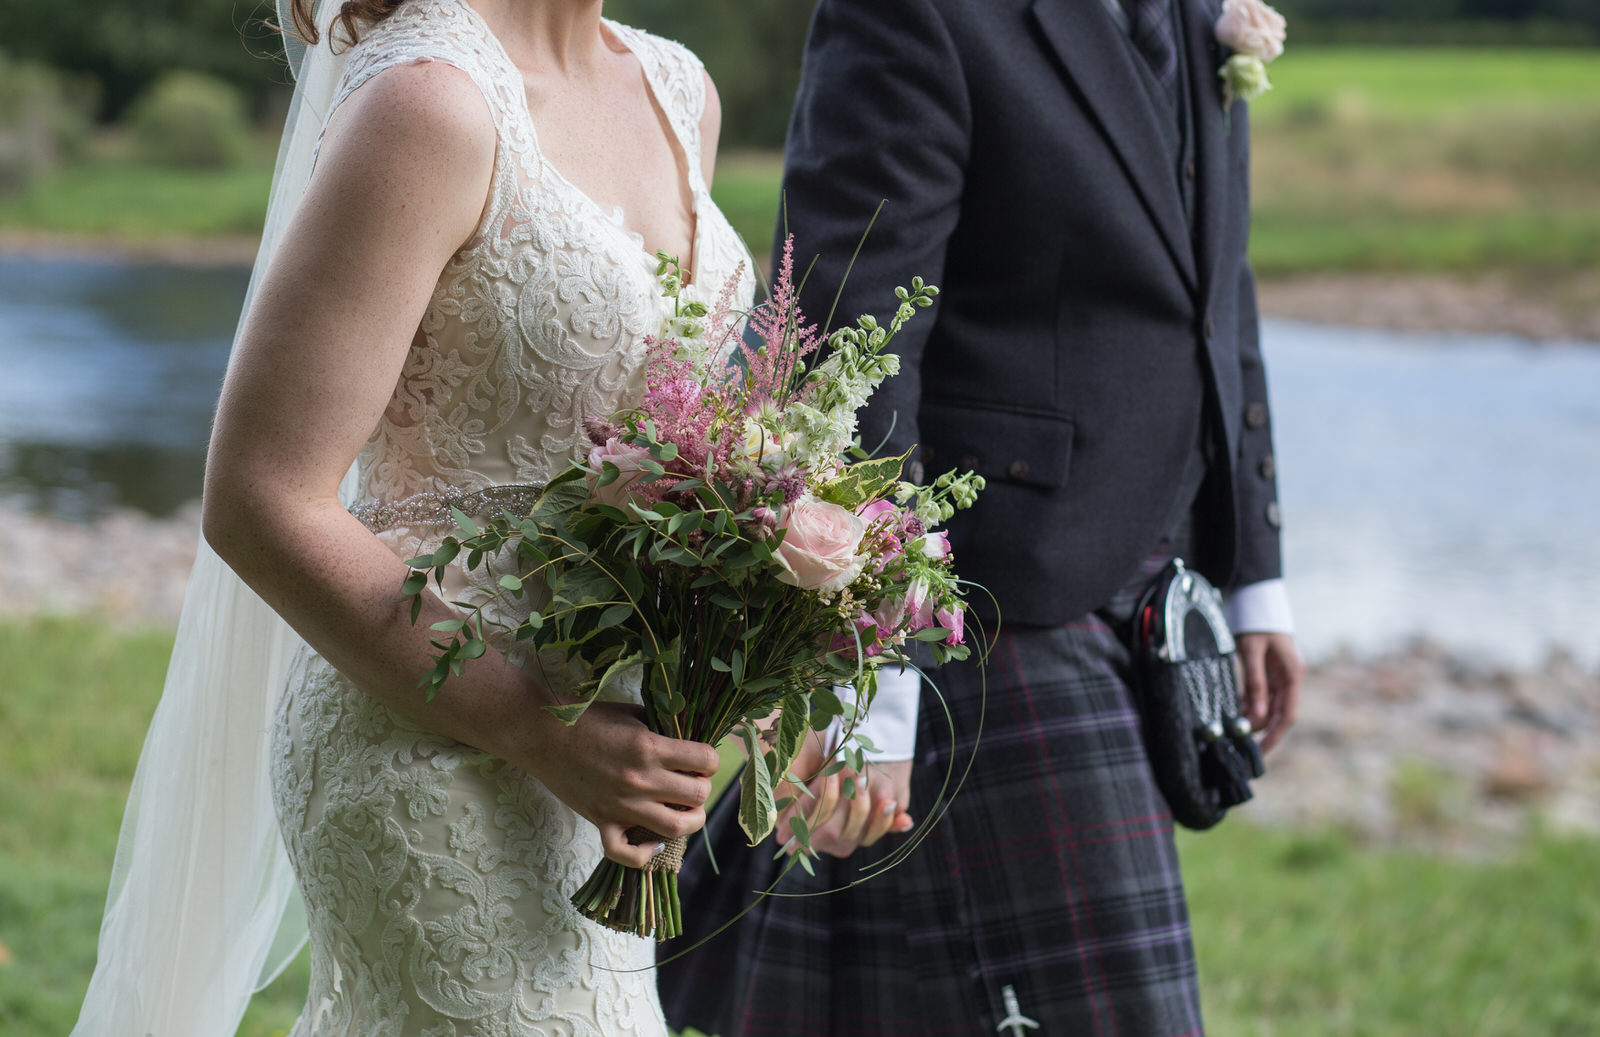 Scottish wedding photographer, Scottish wedding photography, wedding photographer scotland, alternative wedding photography Scotland, Scottish weddings